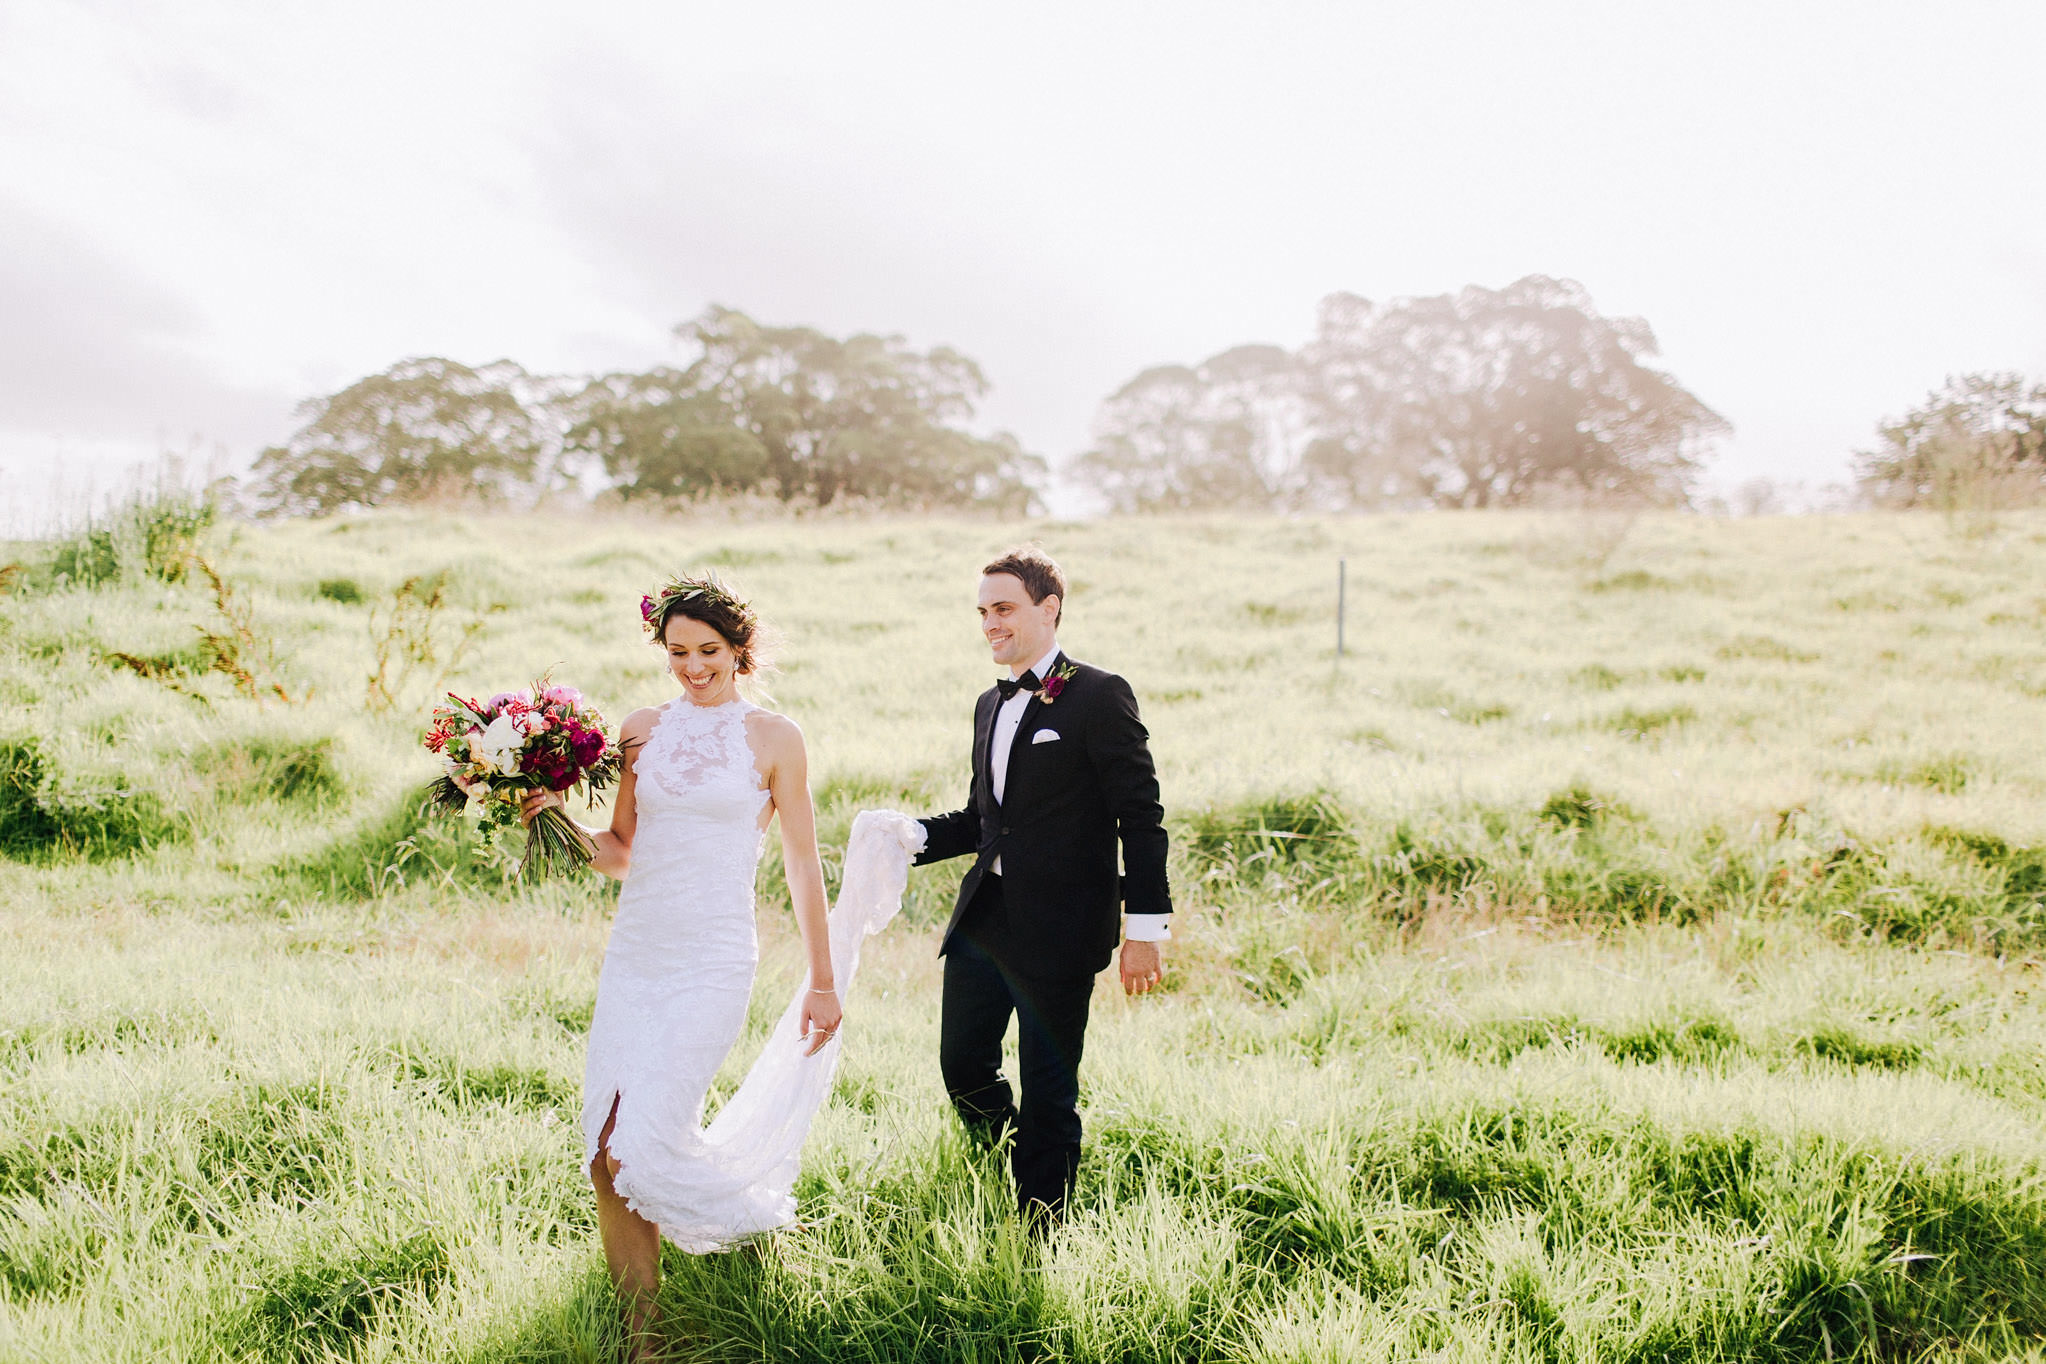 TocalHomestead_WeddingPhotography_LaurenAnnePhotography-1103.jpg